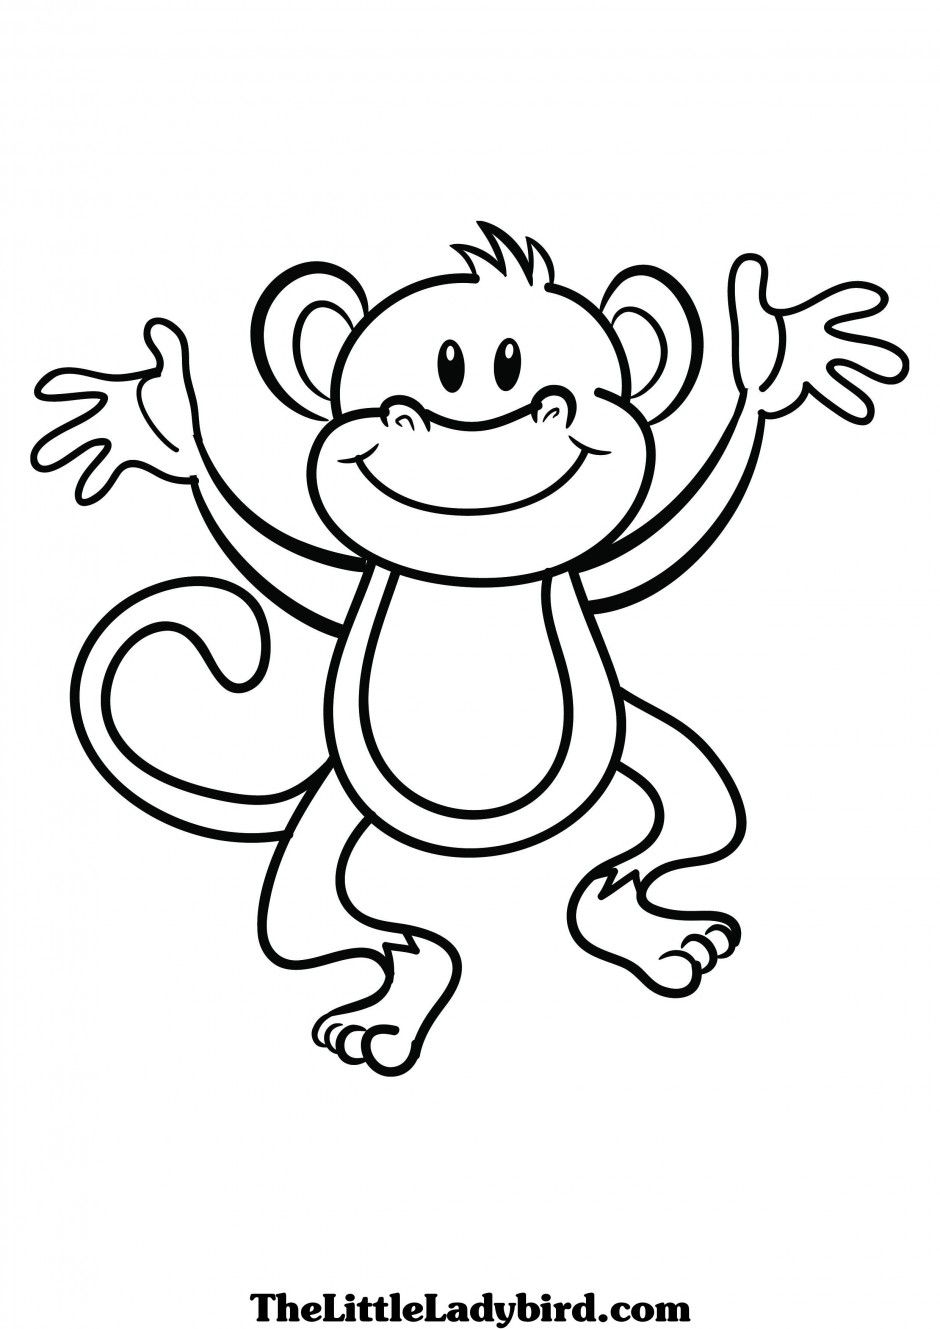 Cute Monkey Clip Art Black And White Coloring Pages